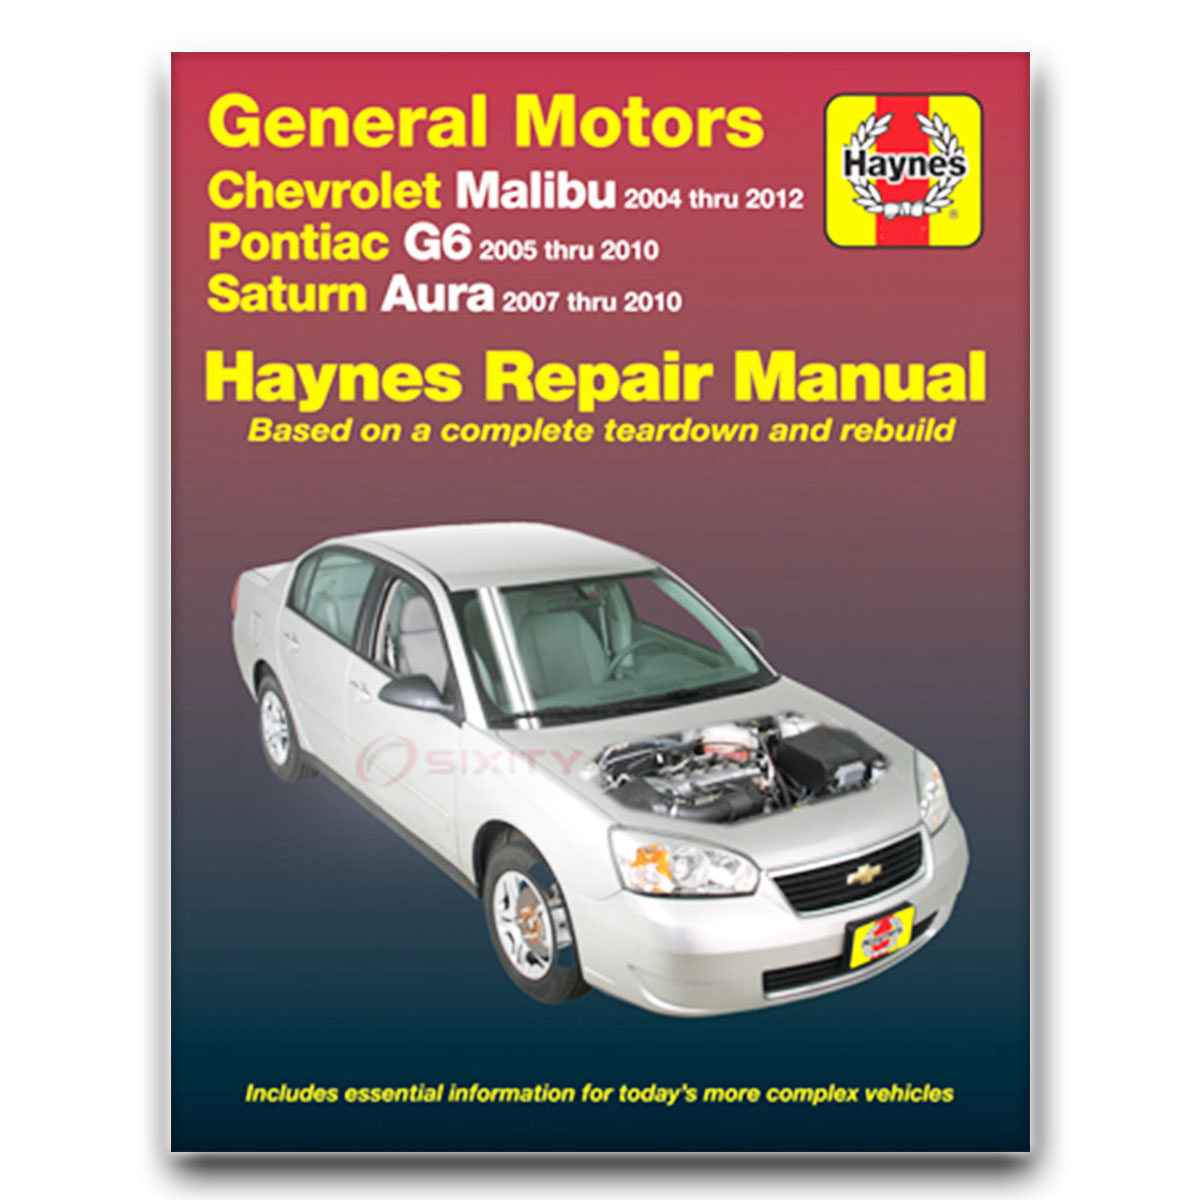 chevy malibu haynes repair manual maxx lt ss ls base ltz classic rh ebay com 2006 Silverado Repair Manual PDF 2010 chevrolet silverado 1500 repair manual